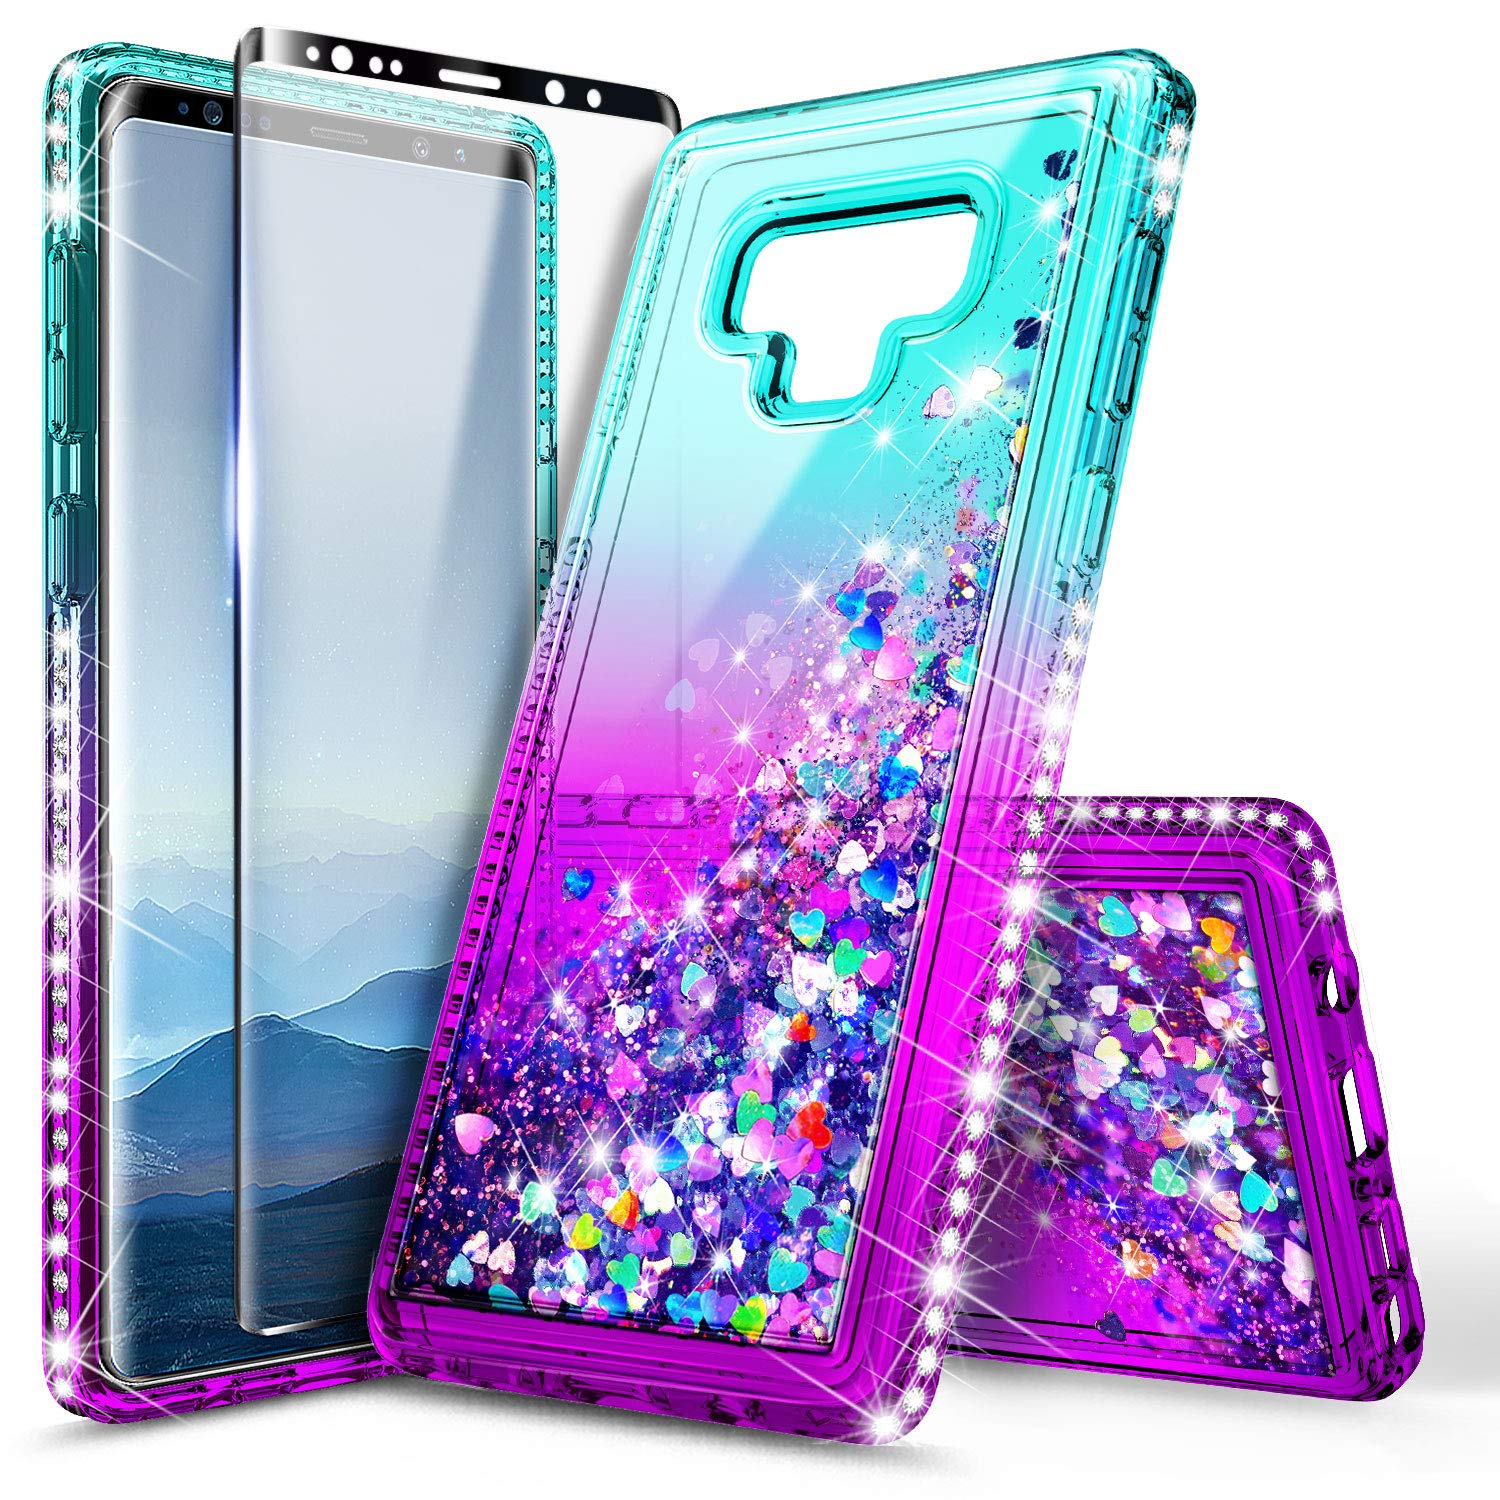 Galaxy Note 9 Case with Screen Protector